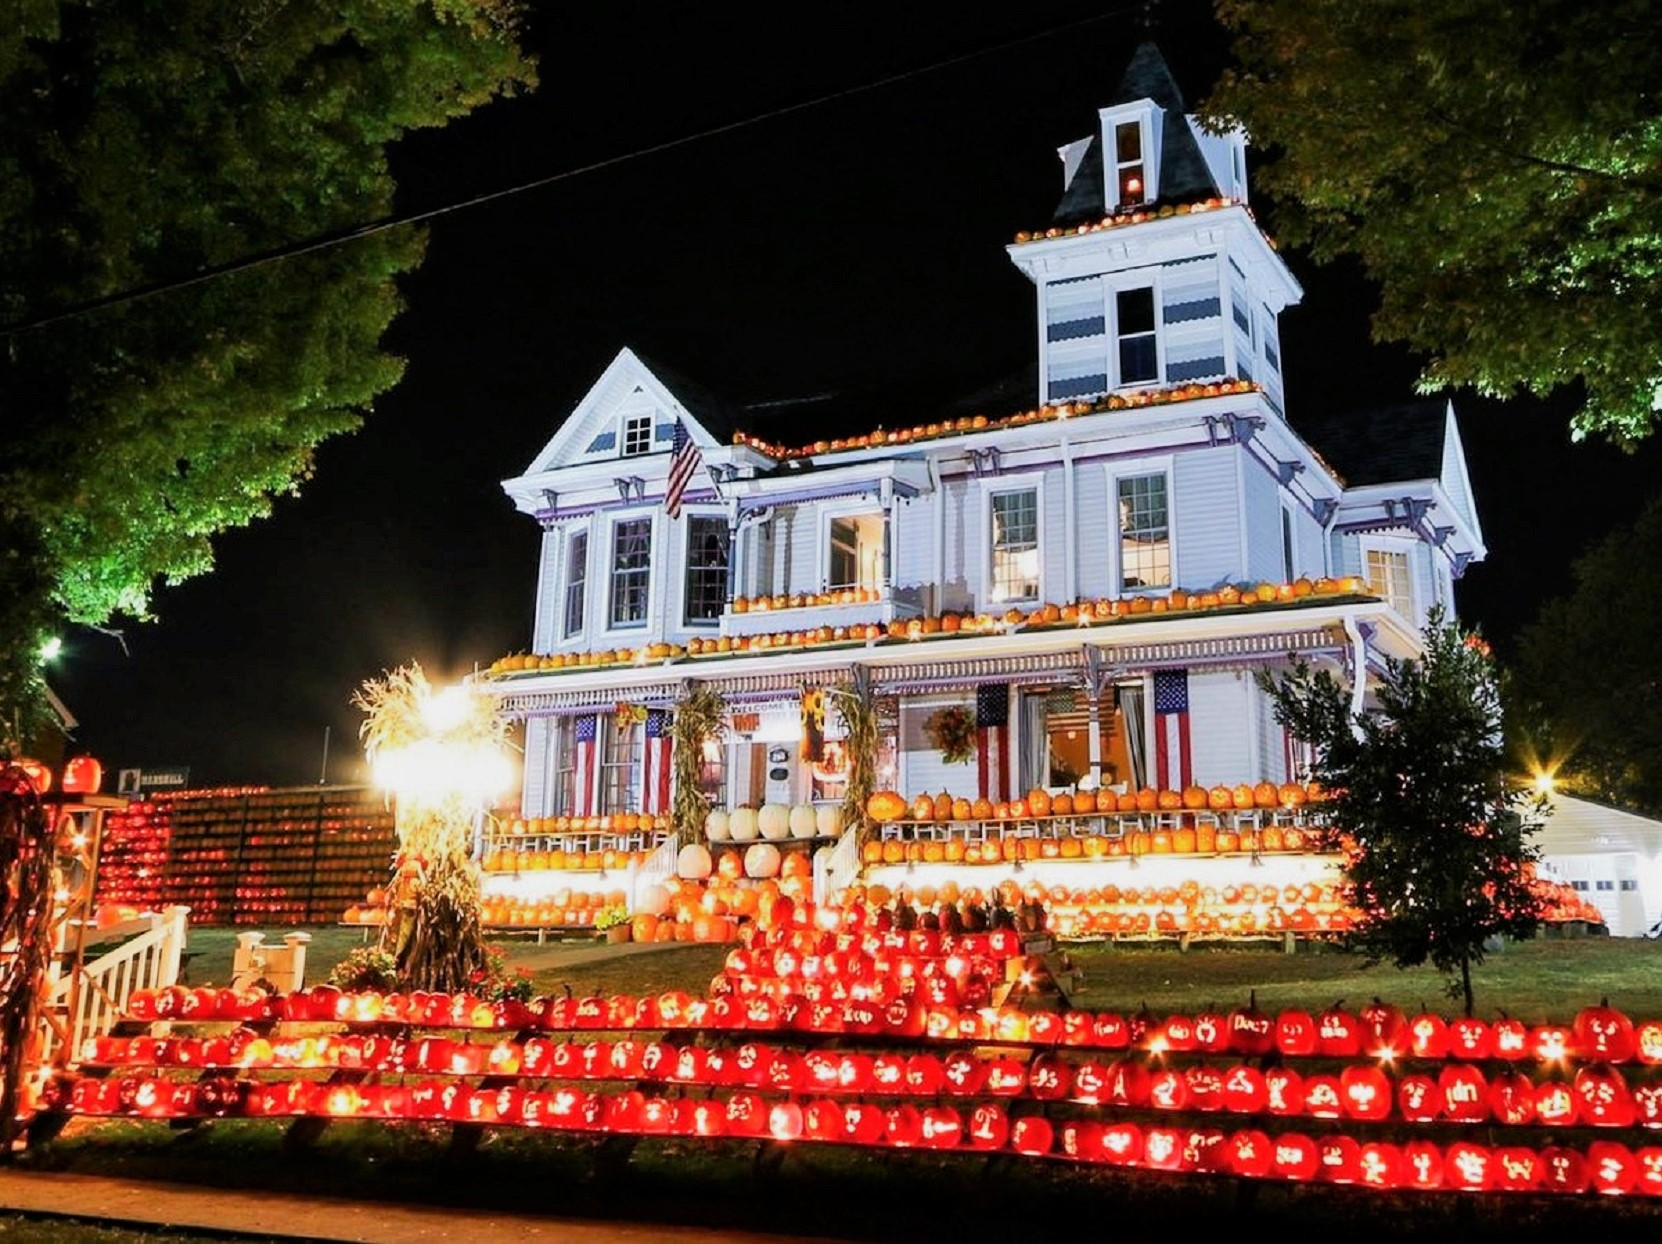 The Kenova Pumpkin House in West Virginia